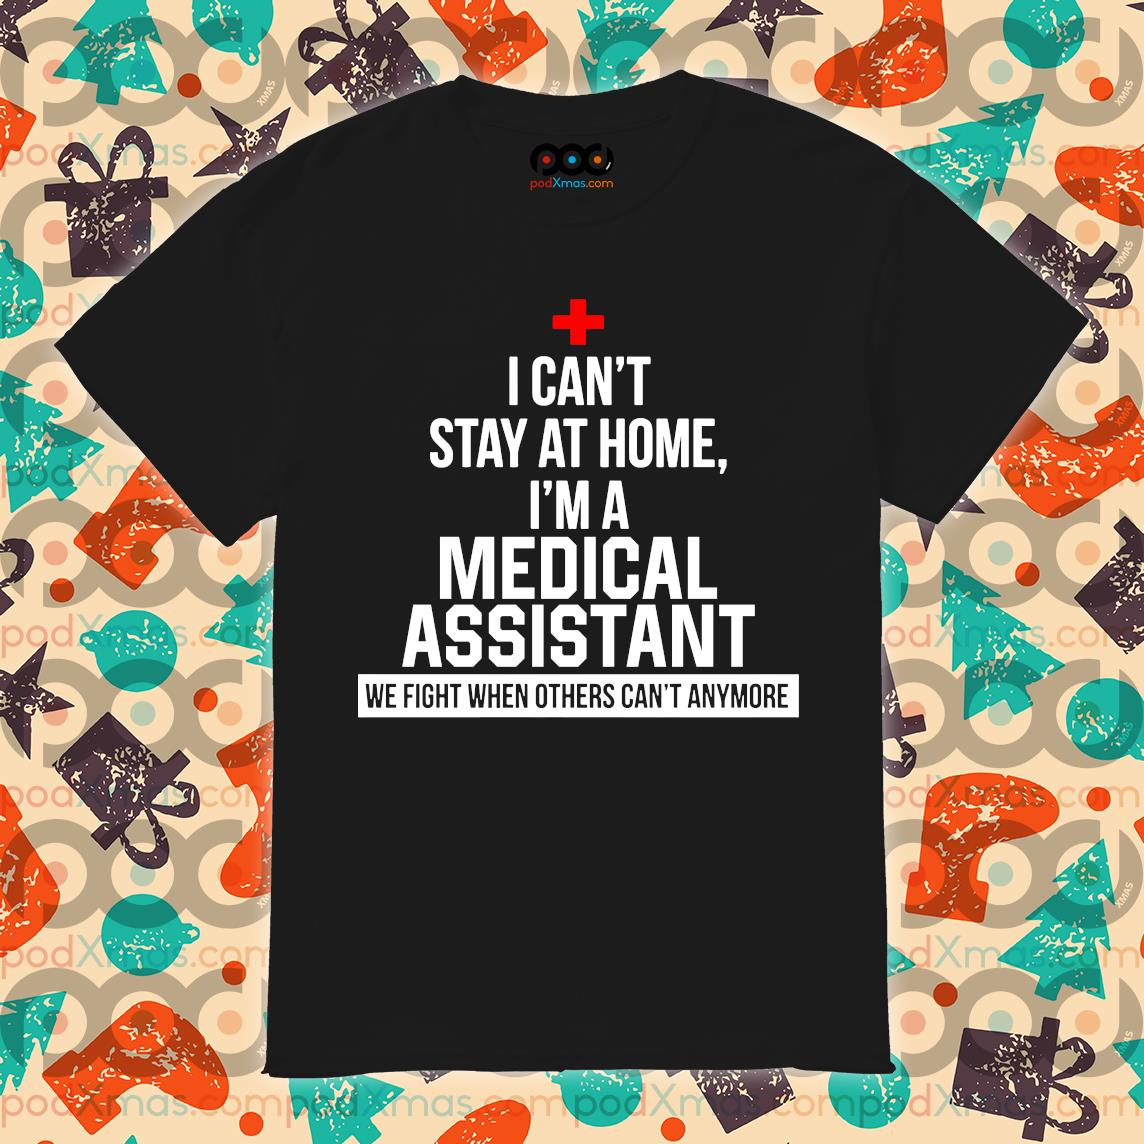 I can't stay at home I'm a Medical Assistant shirt